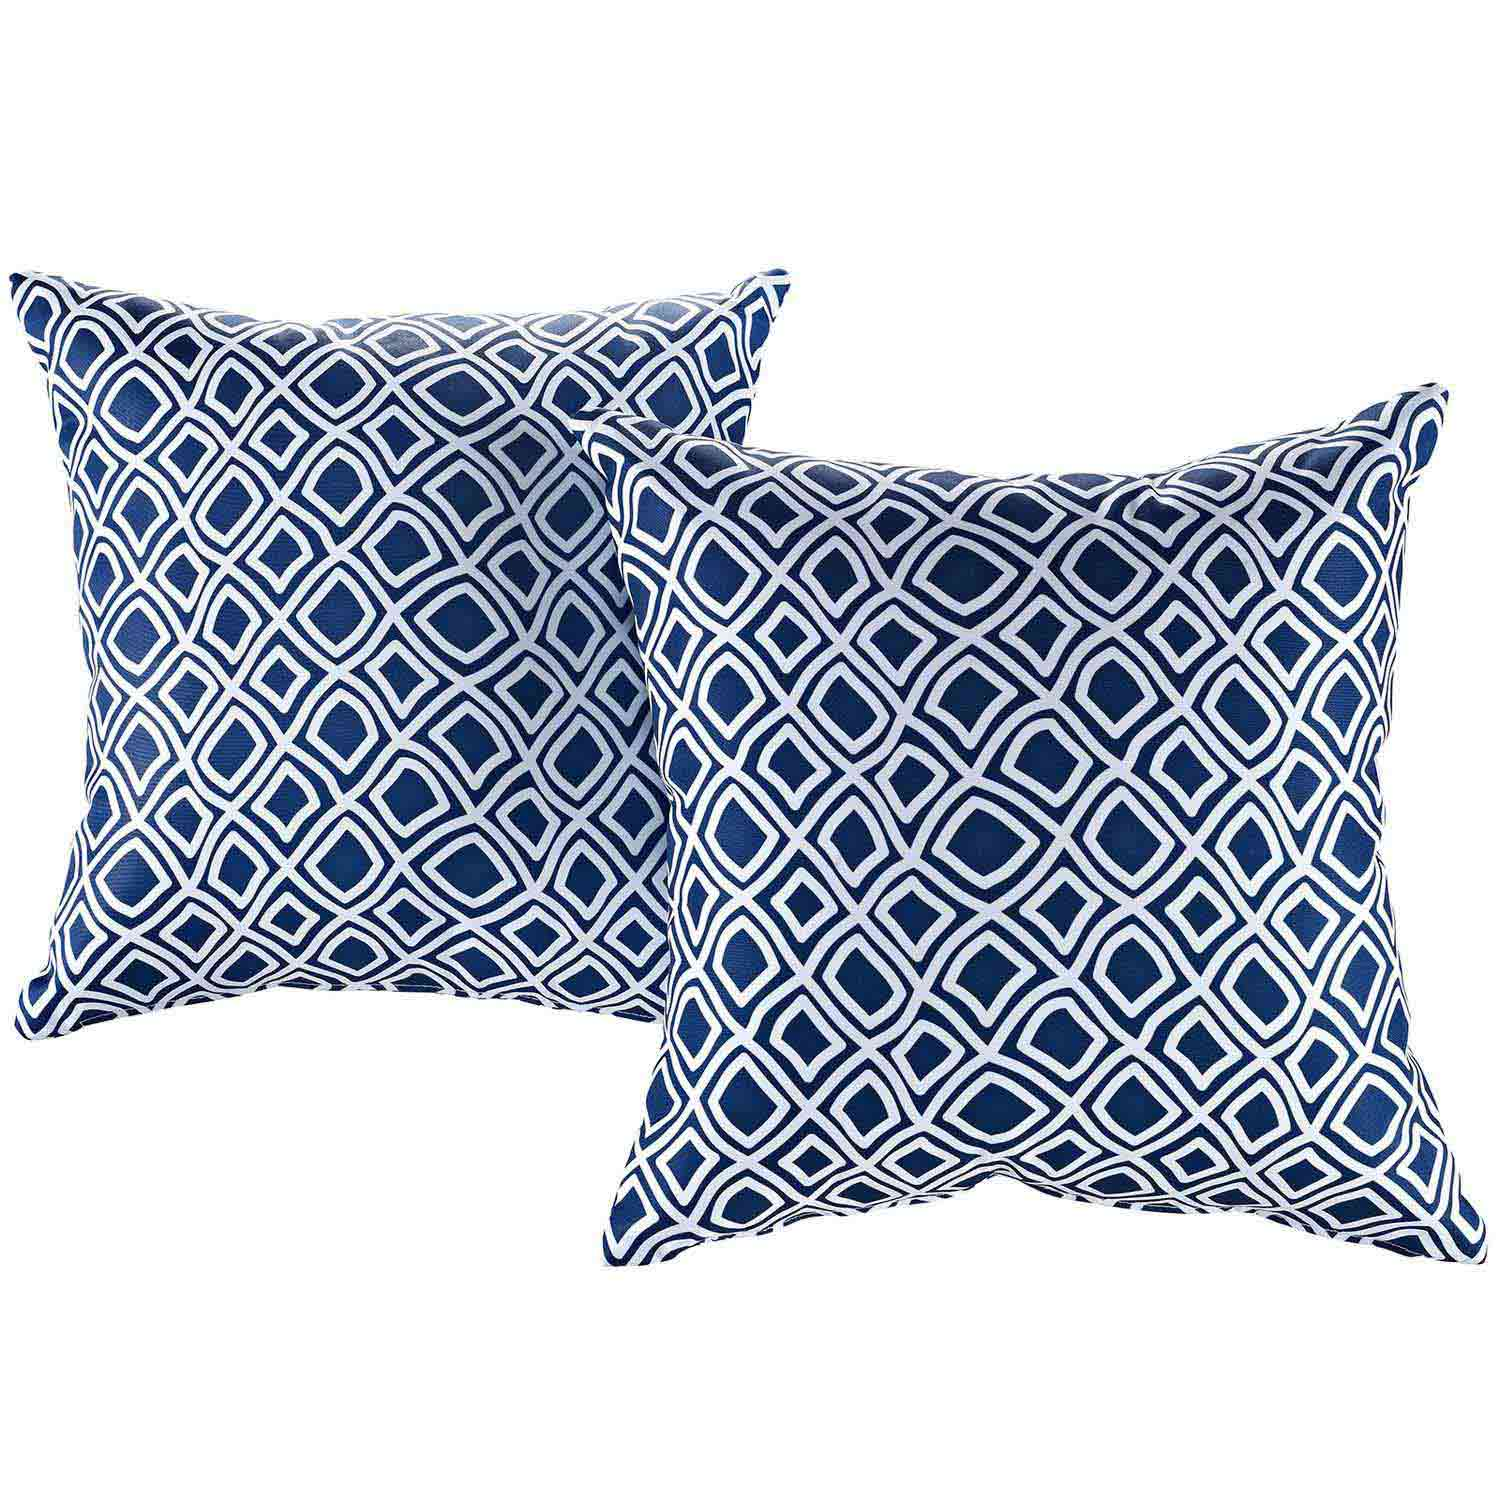 Modway Modway Two Piece Outdoor Patio Pillow Set - Balance